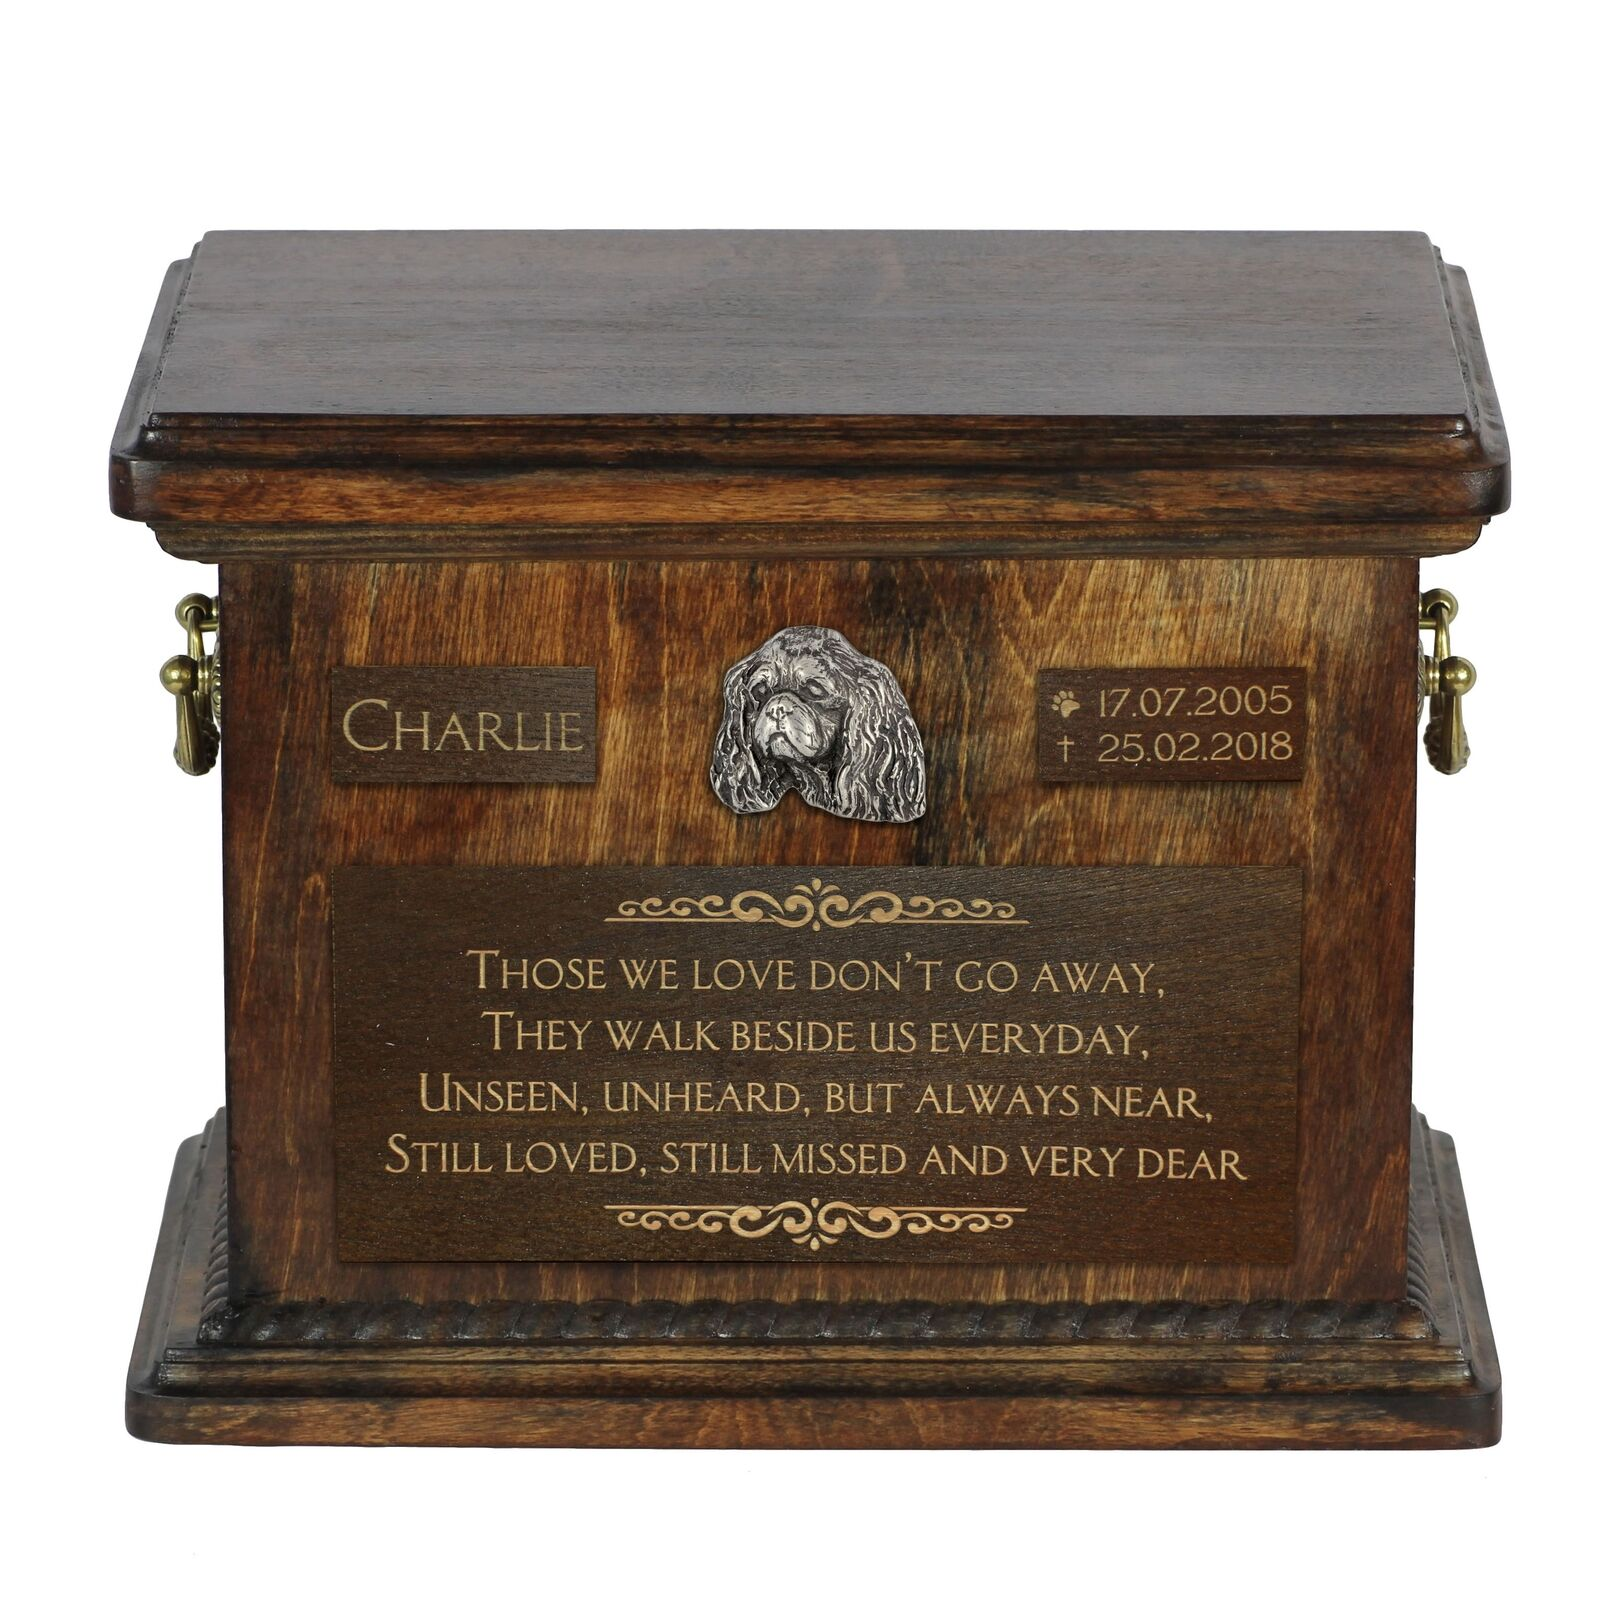 King Charles Spaniel (2) - Urn for dog's ashes with image of a dog, Art Dog